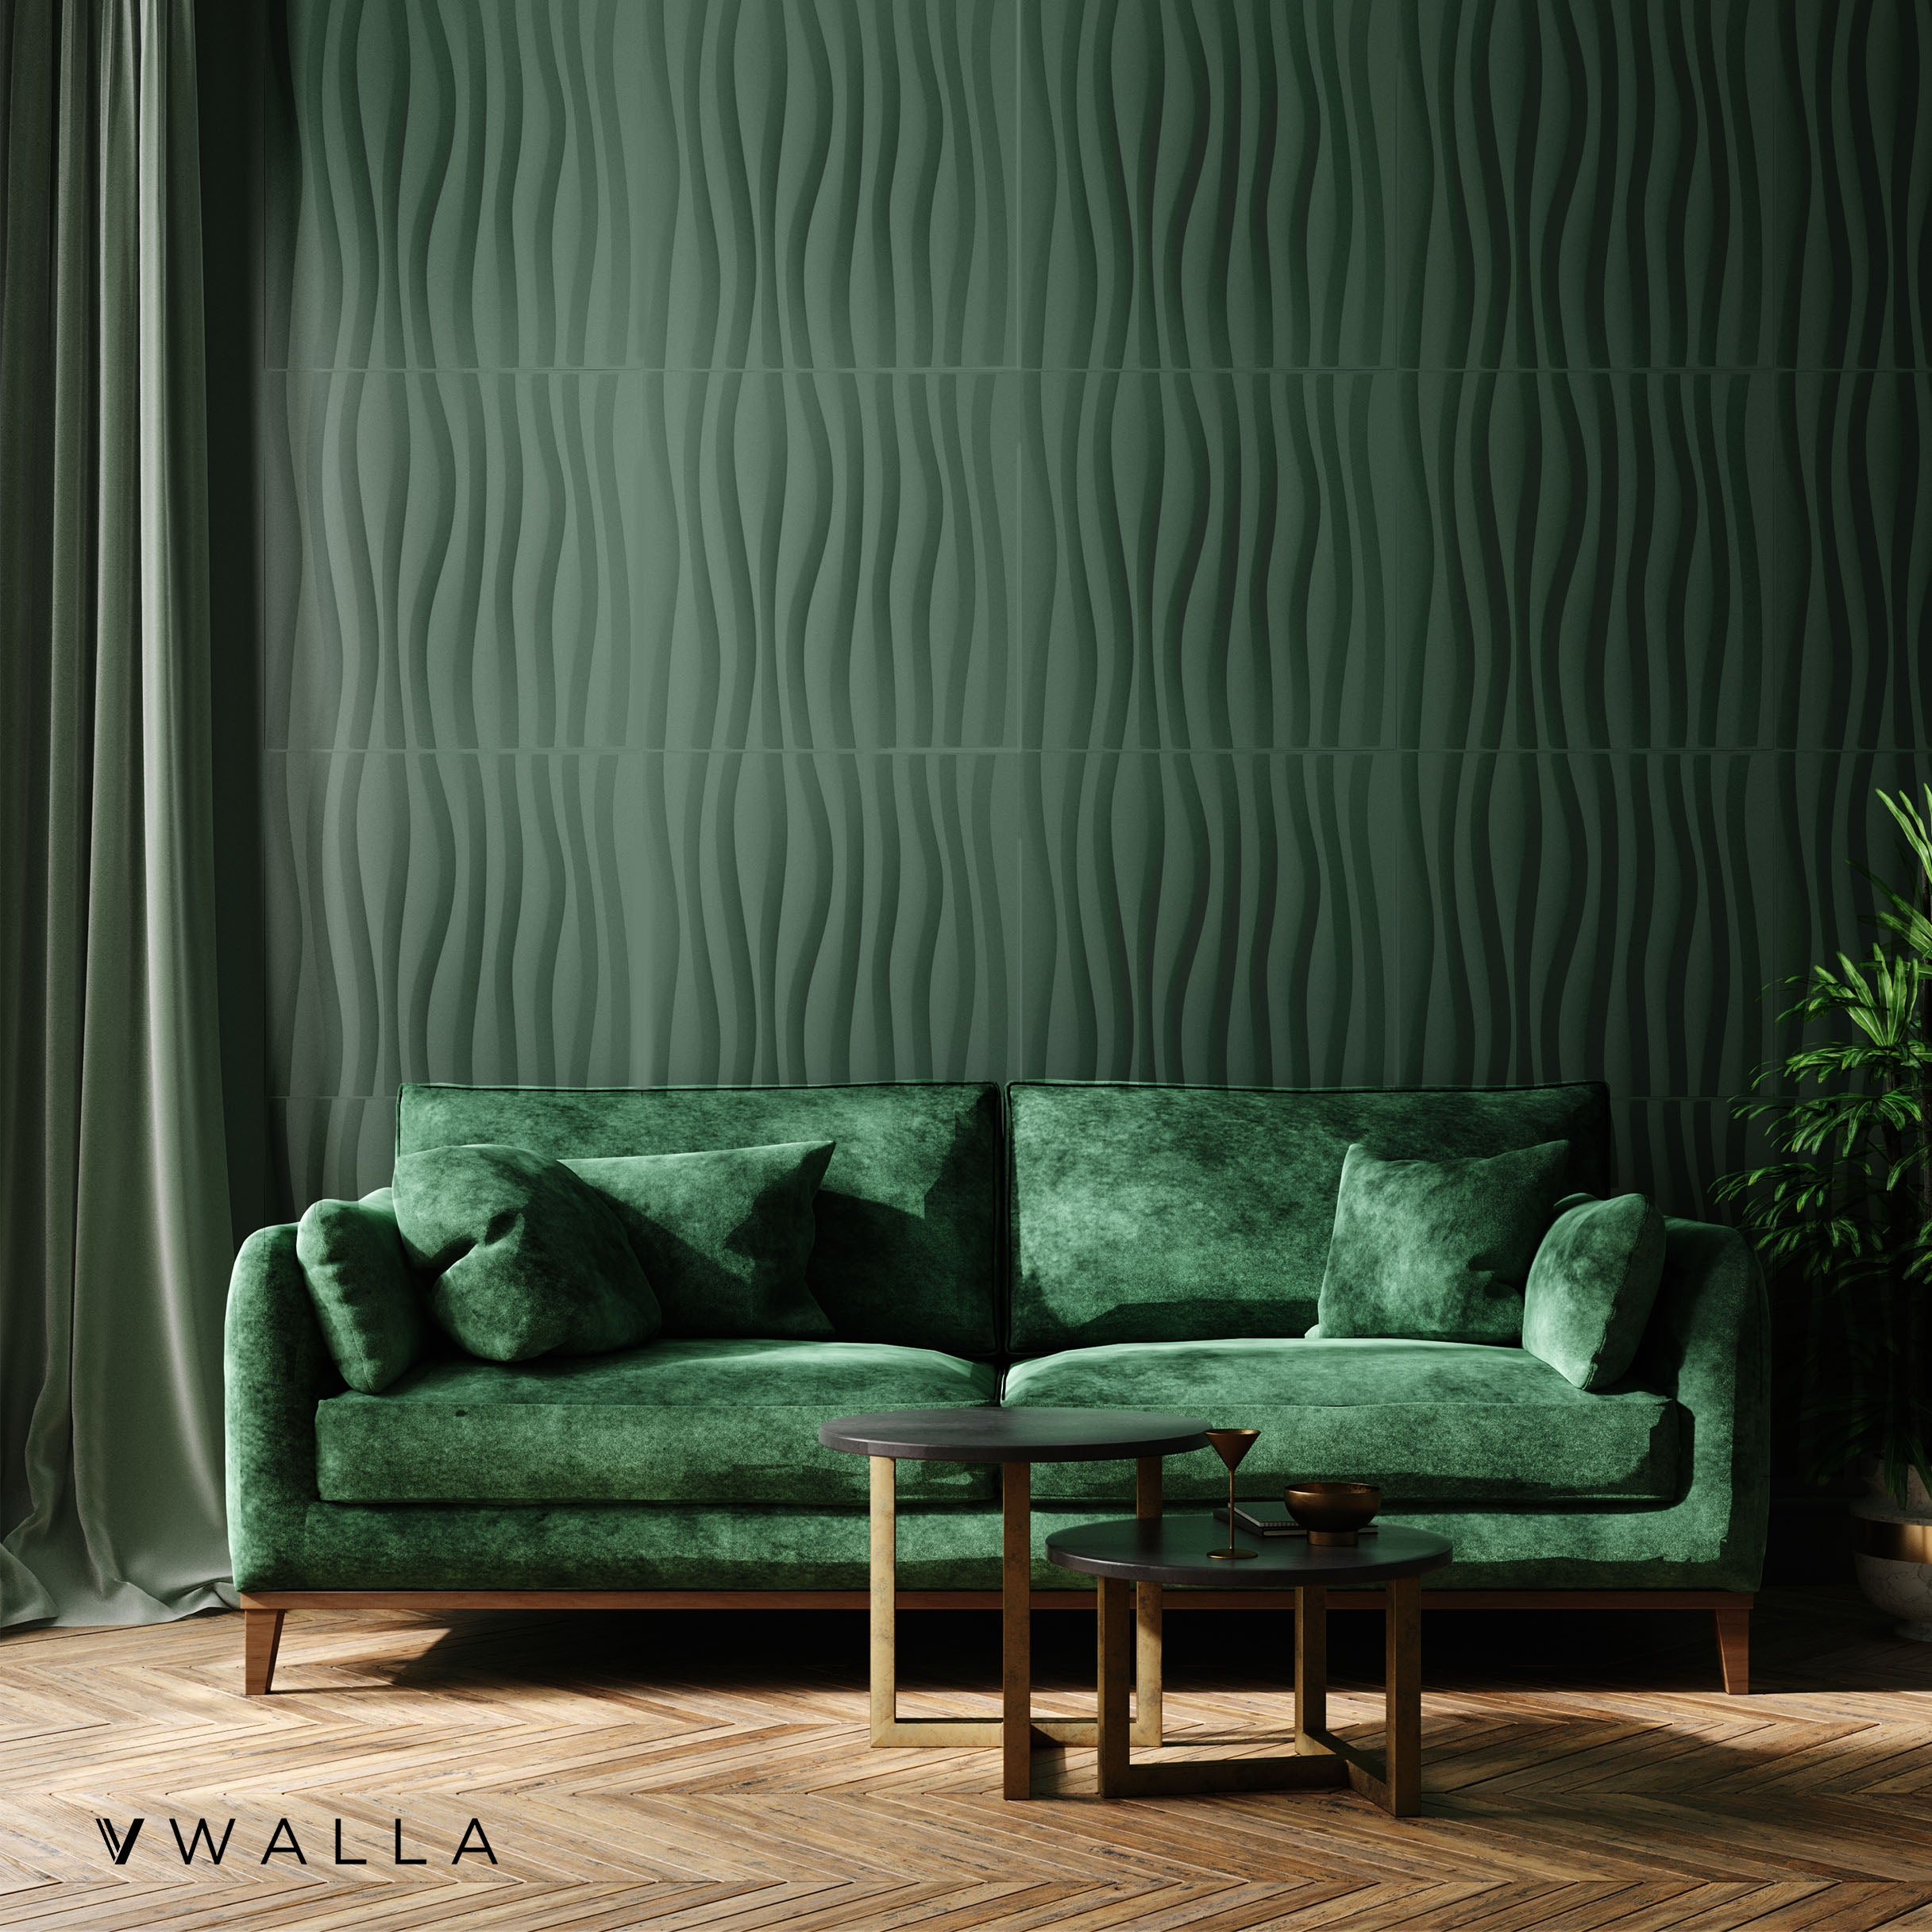 3D Wall Panel - Waves